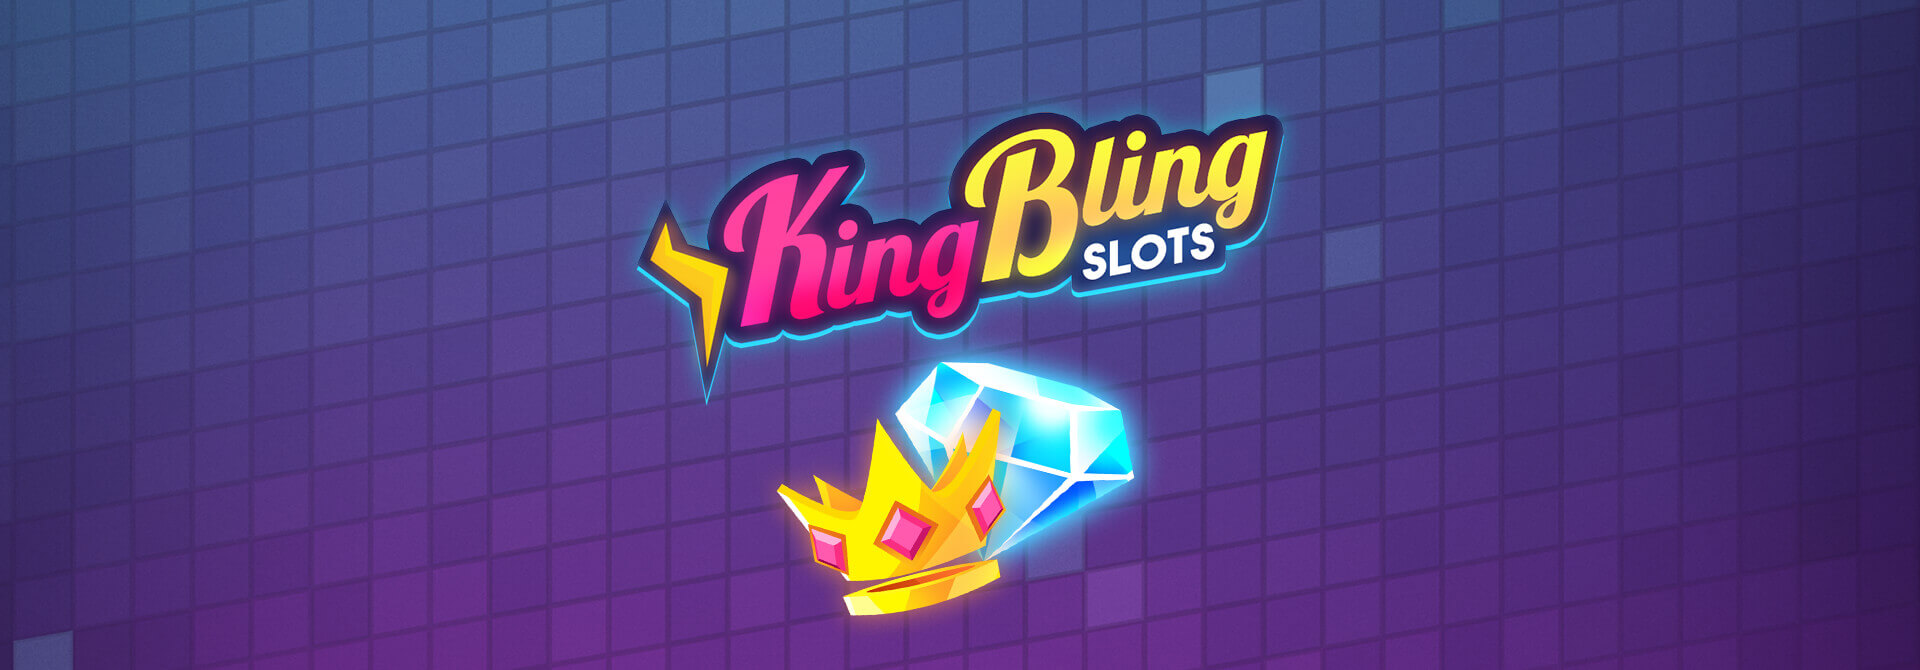 Mr Bling's Groovin' party playlist!